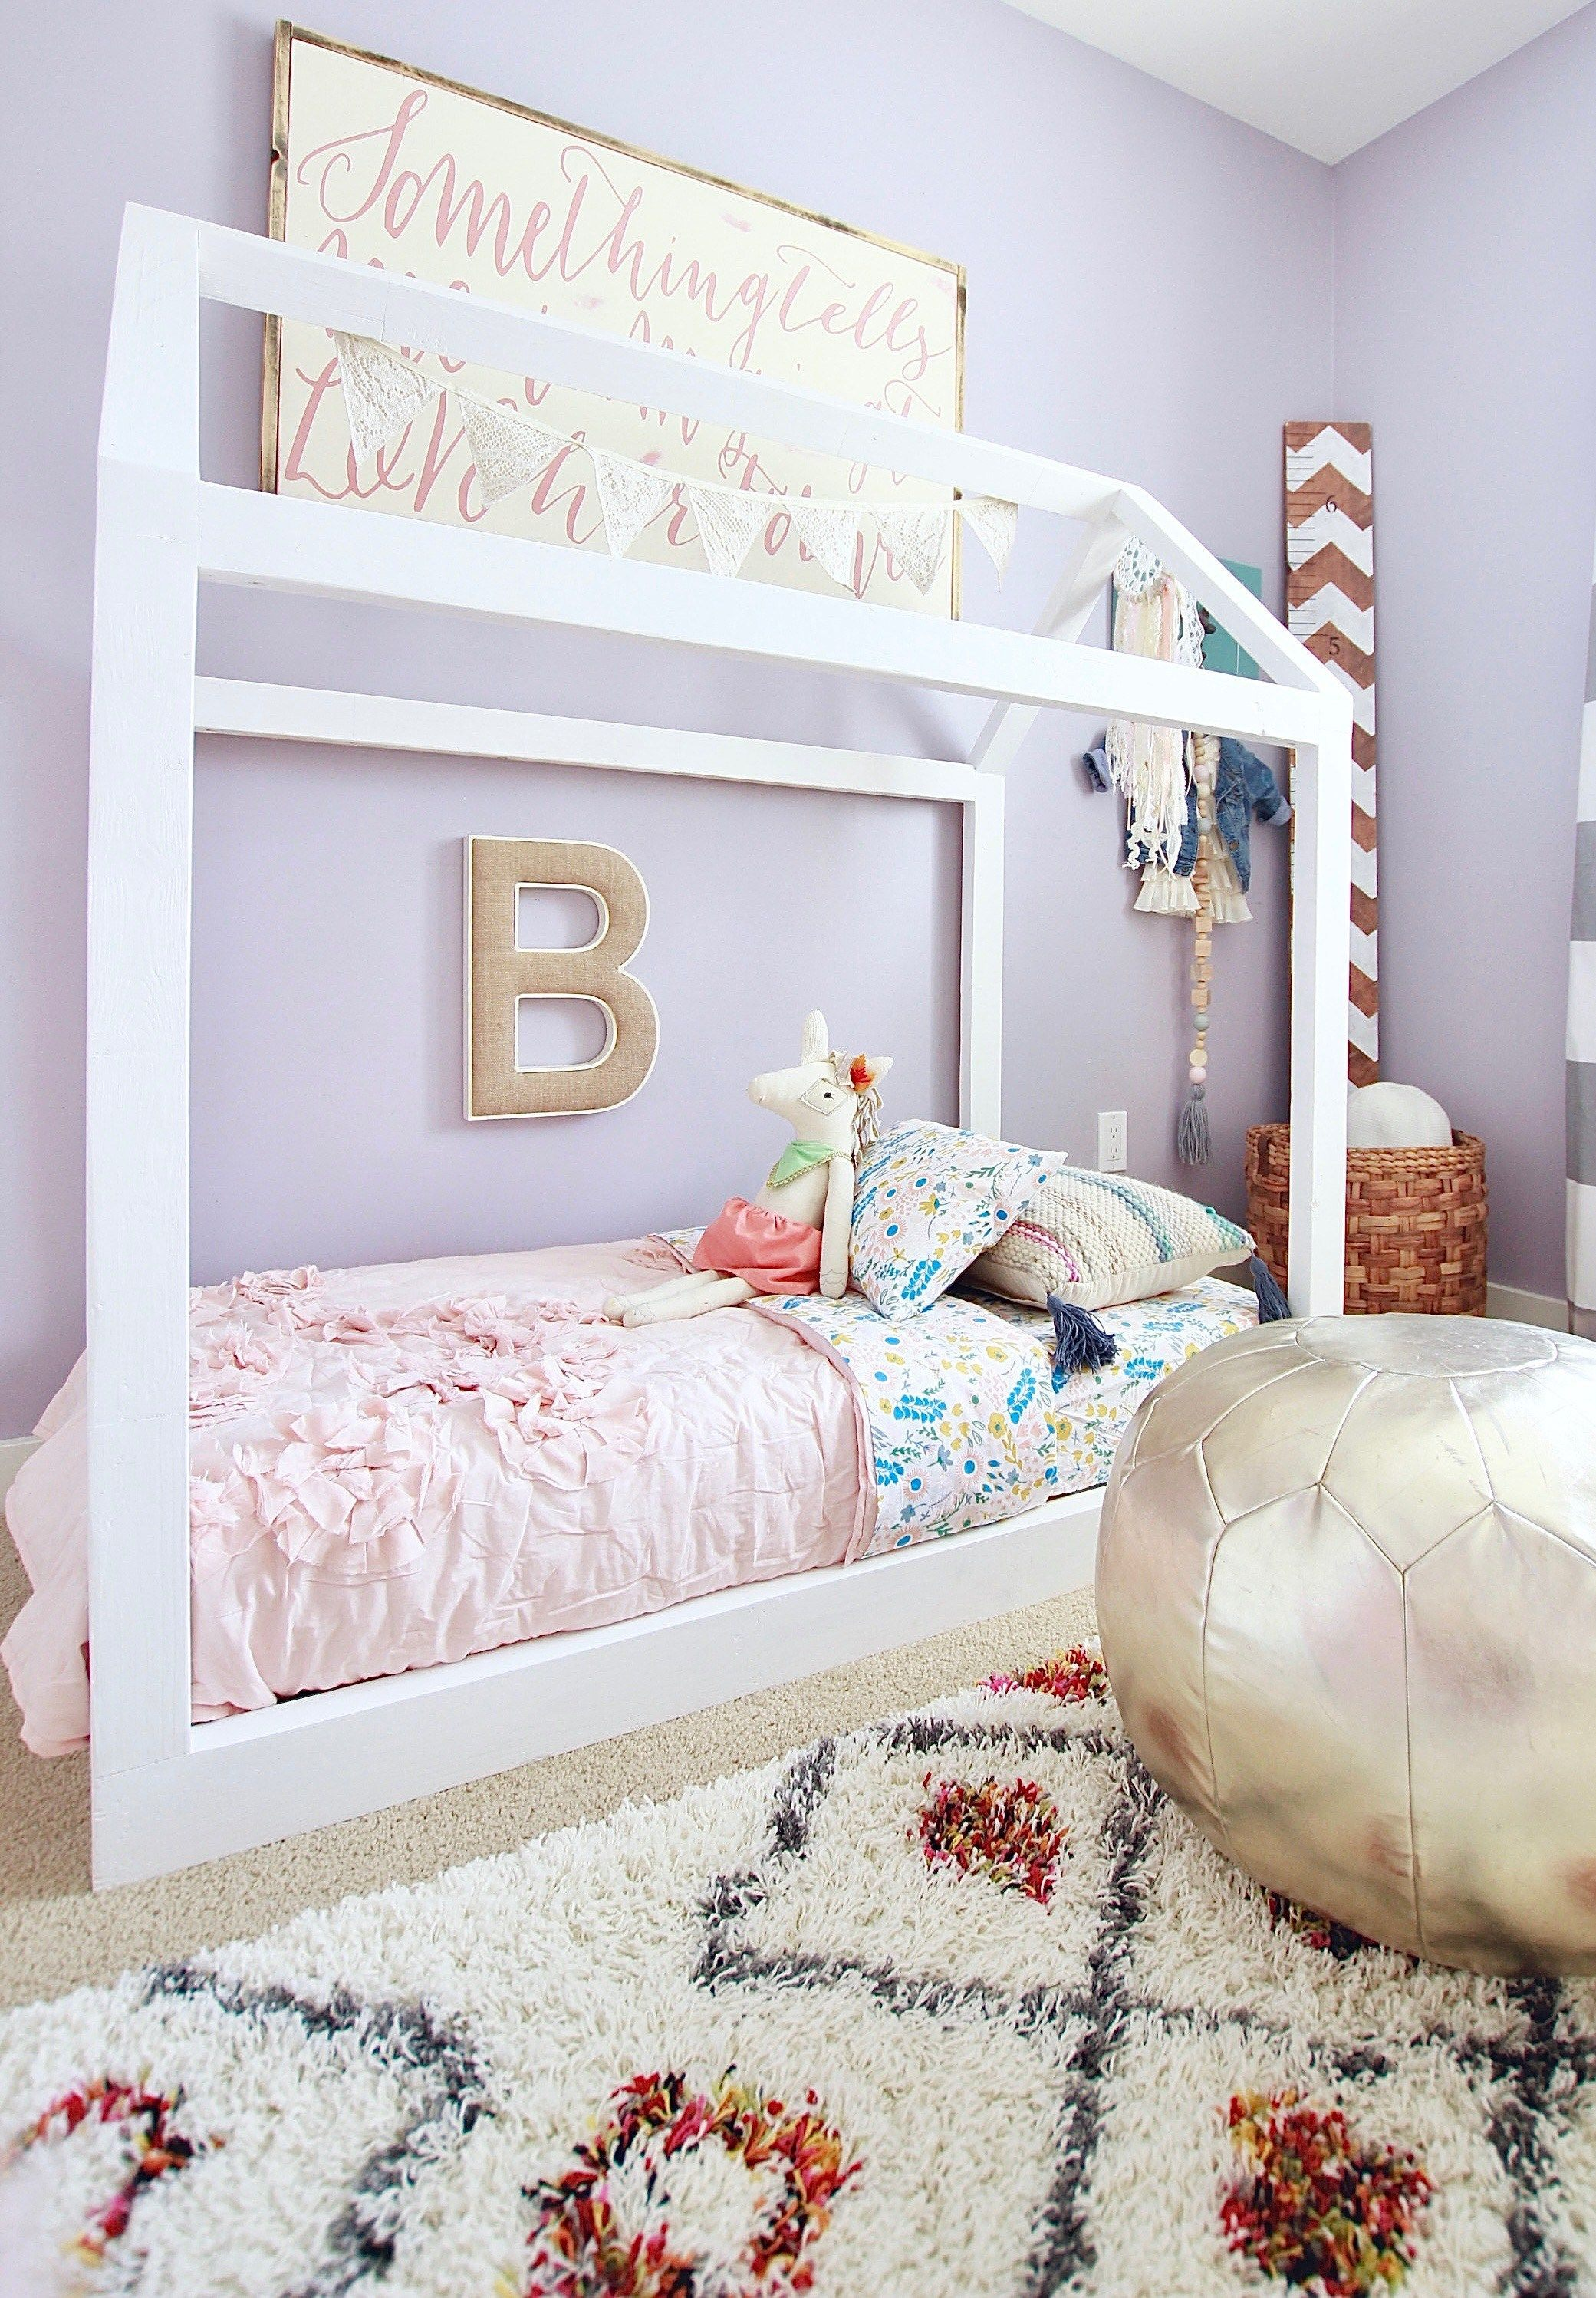 Lit Pour Enfant 2 Ans Luxe Our Super Easy Diy Toddler House Bed This Bed Took Under 2 Hours